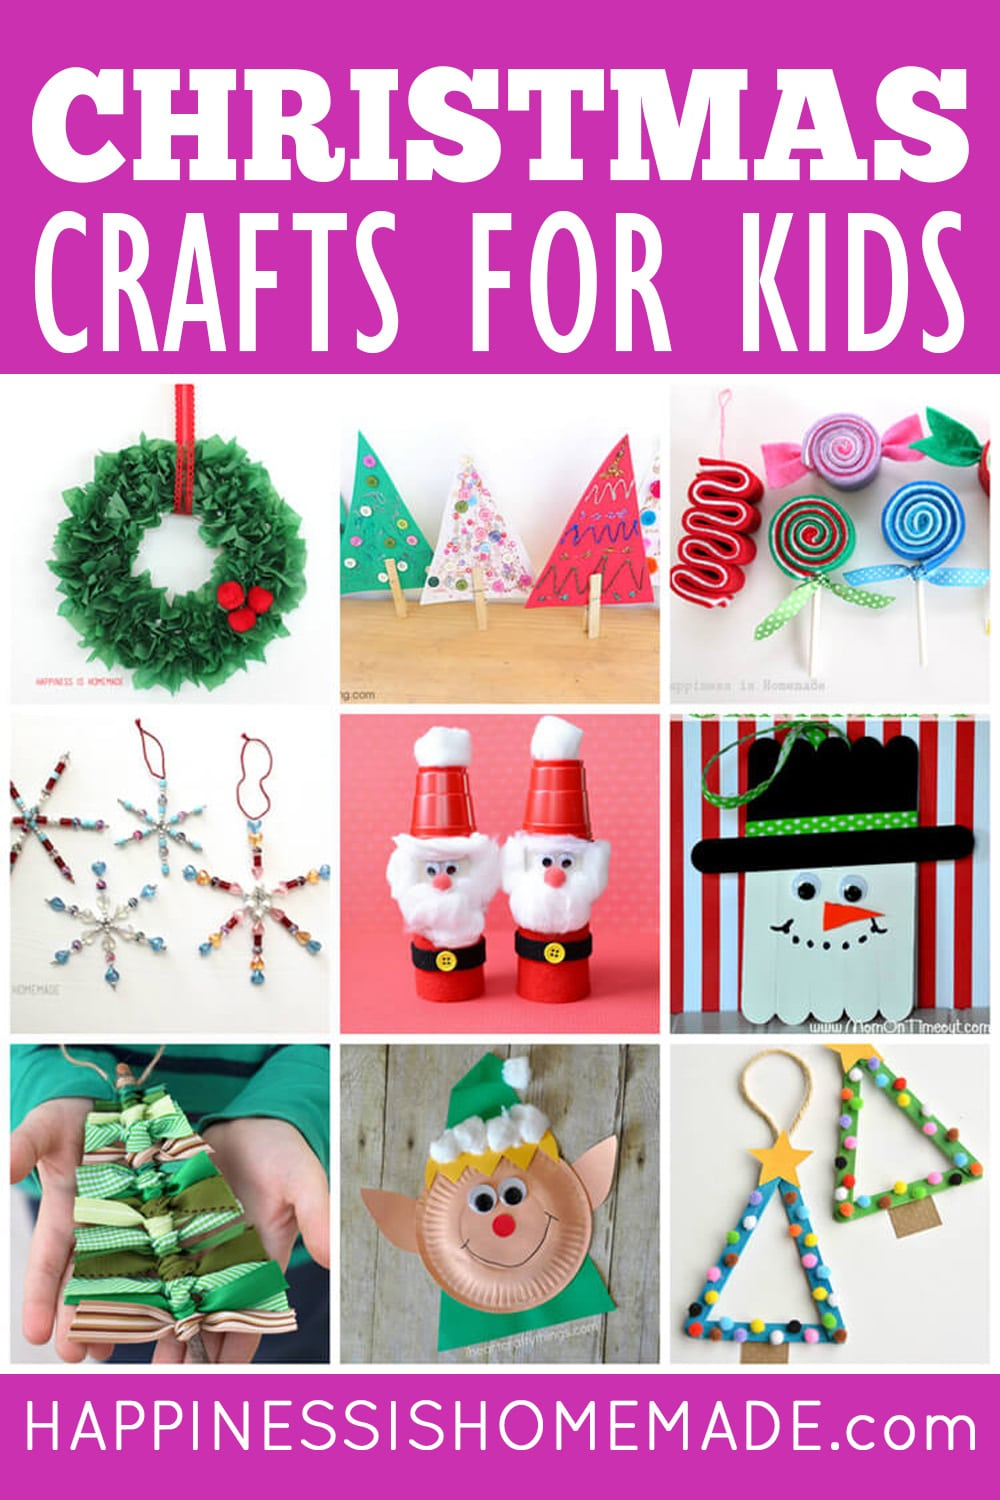 20+ Easy Christmas Crafts for Kids of All Ages   Happiness is Homemade